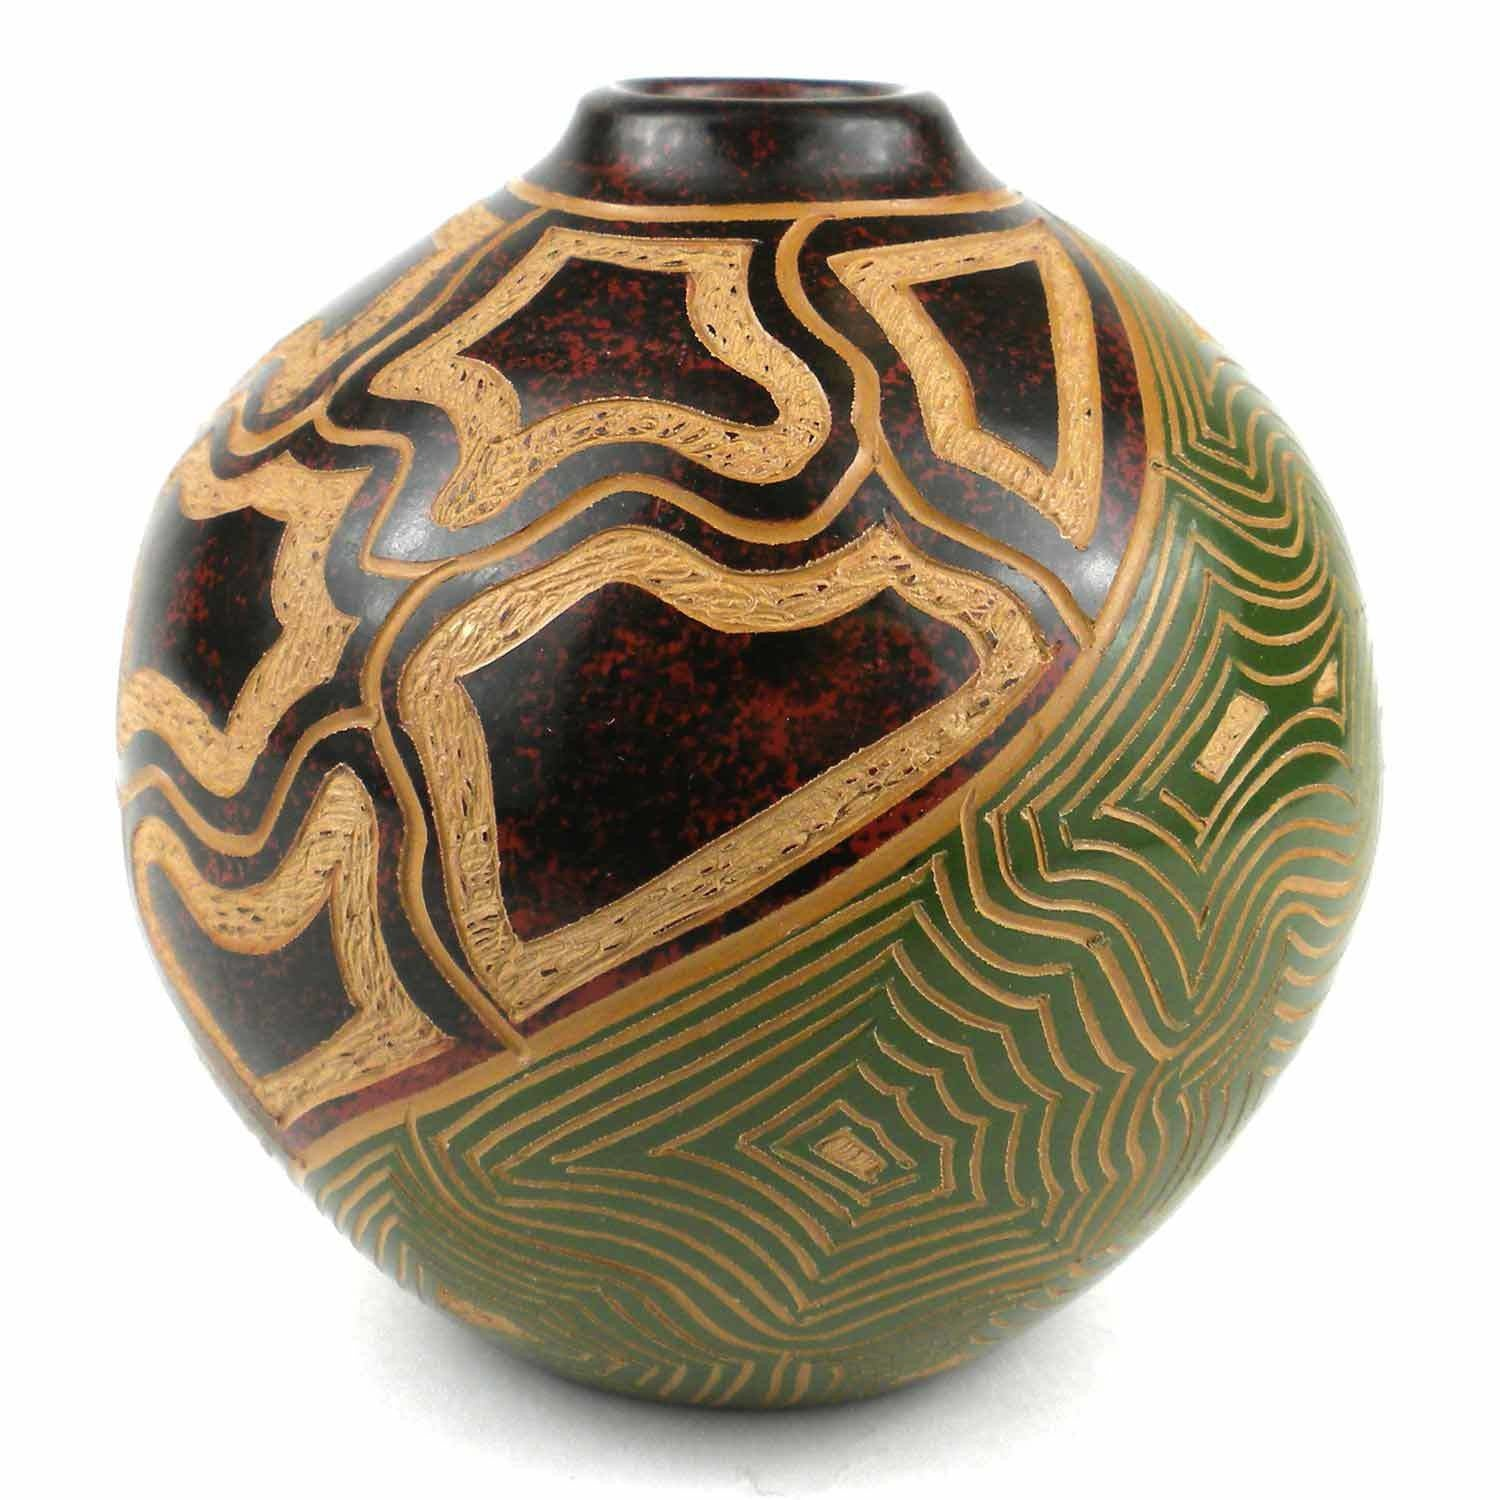 4 inch Tall Green & Shell Vase - Esperanza en Accion